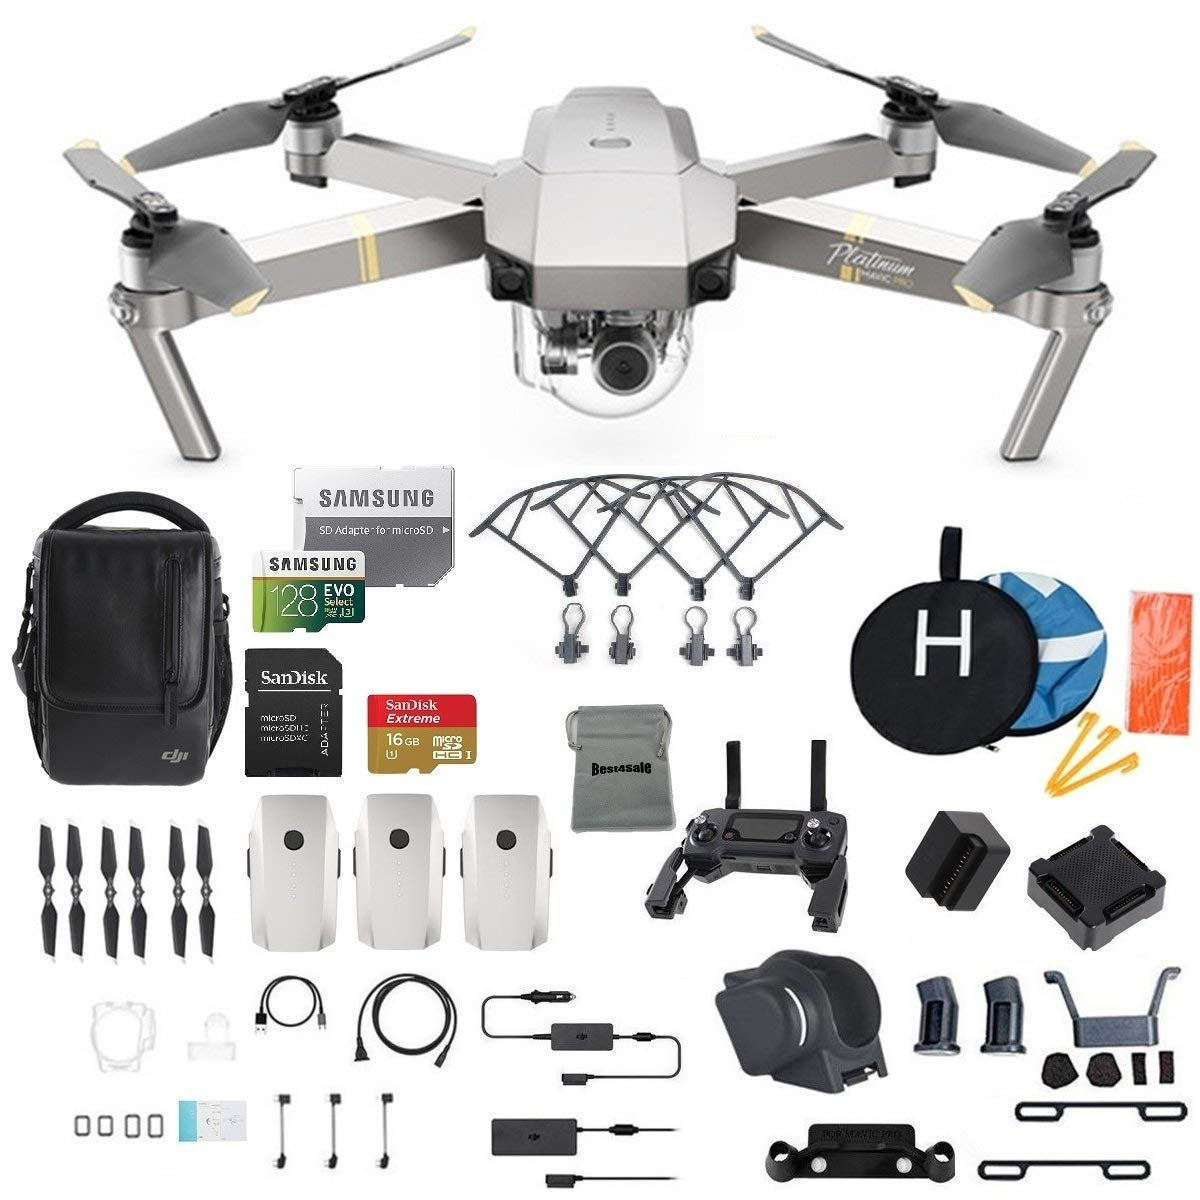 DJI Mavic Pro Platinum Fly More Combo Collapsible Quadcopter Drone Bundle, Additional SD Card, 2 Extra Battery, Landing Kit and More by DJI